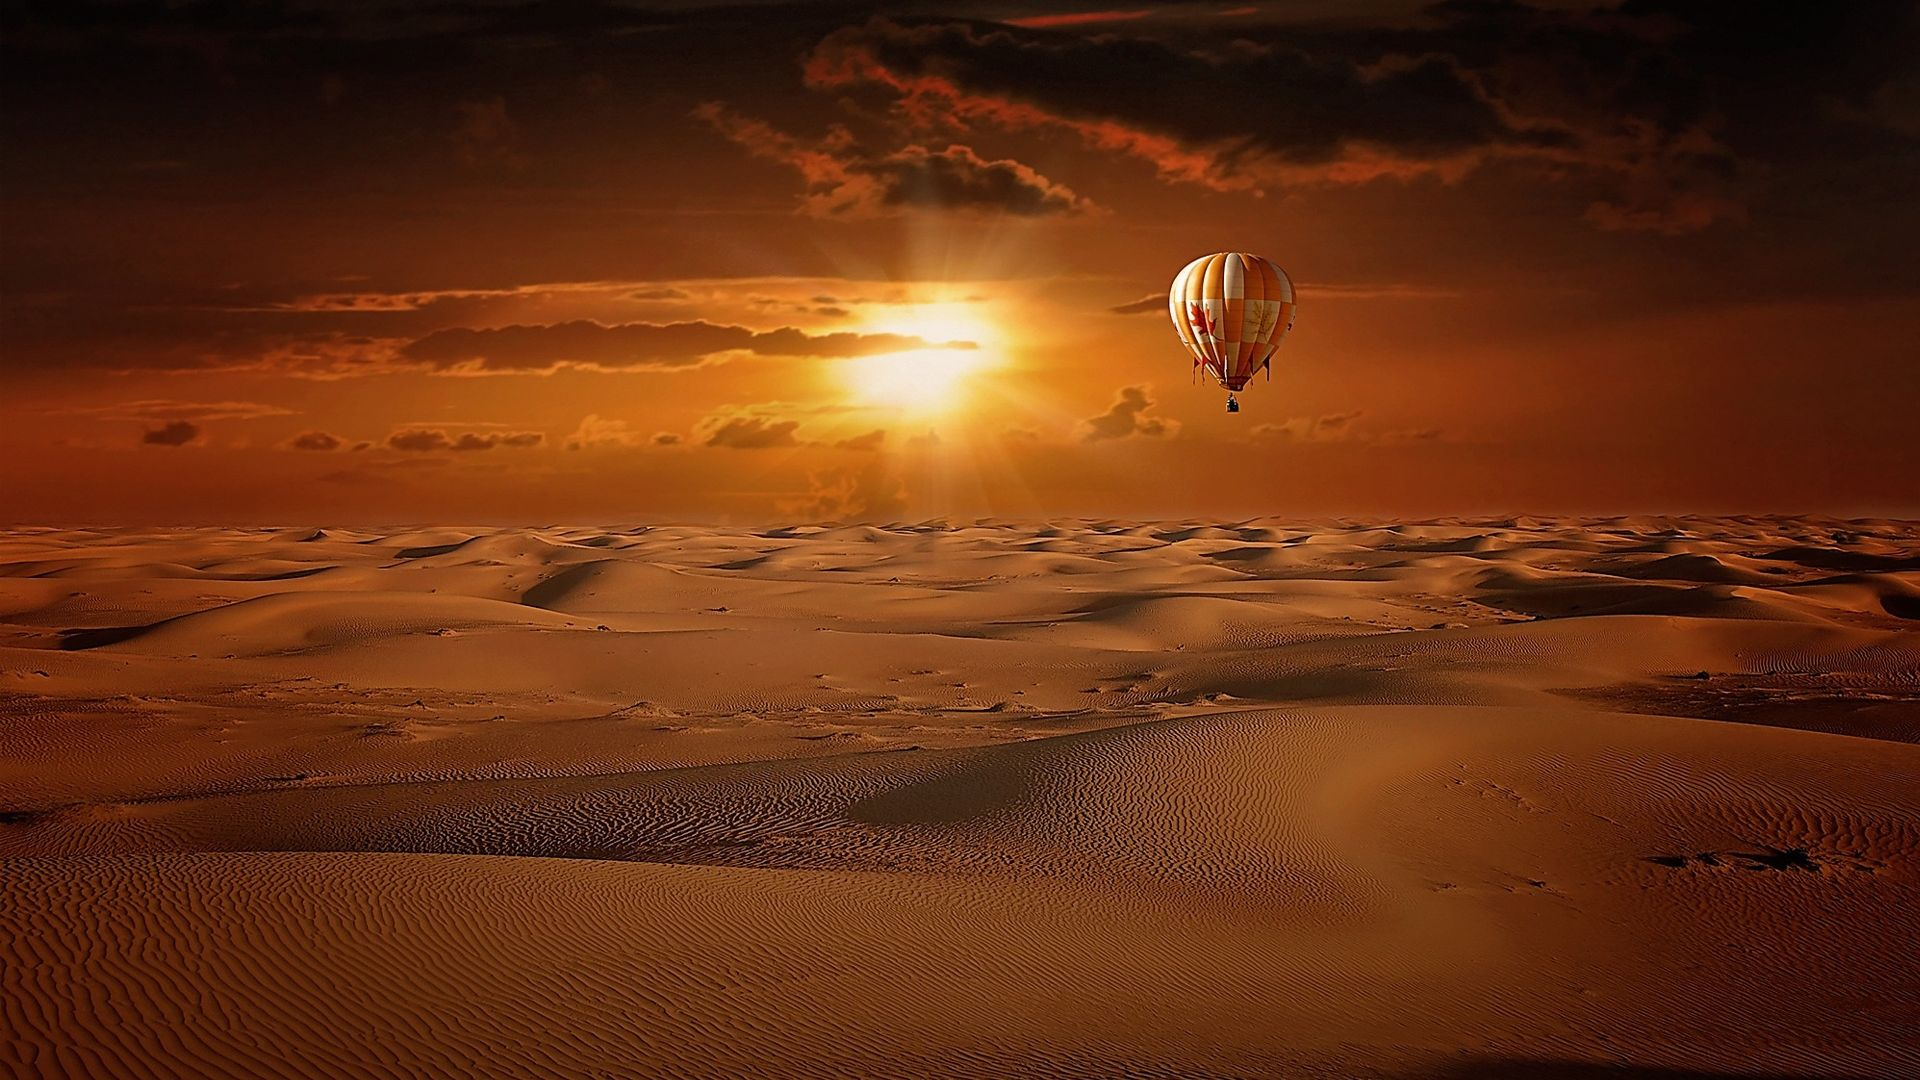 prospect,and,ballon,creation,melodic line,sight,hot,persuasion,nature,backbone,broadcast,melodic phrase,during,desert,desert sand,air,thought,sand,sunset,position,view